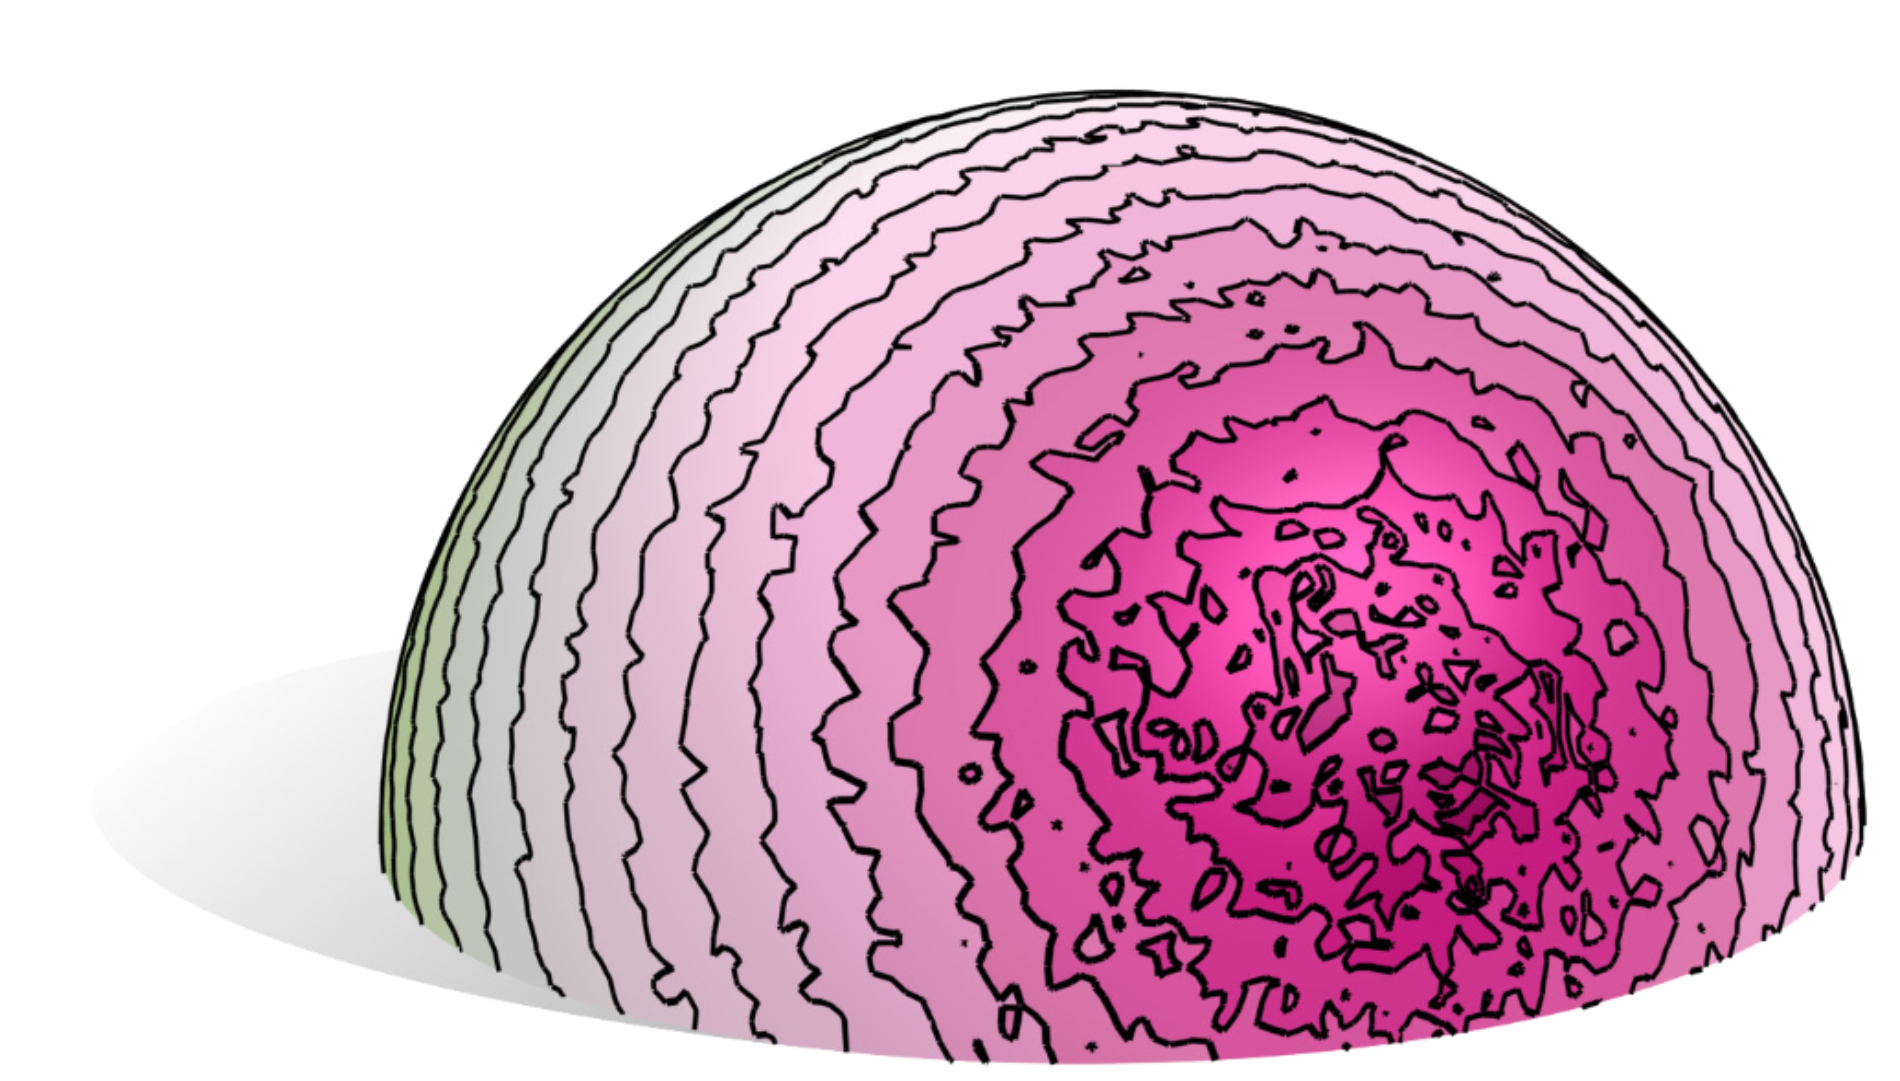 Image courtesy of: Oden stein and al Natural Boundary Conditions for Smoothing in Geometry Processing